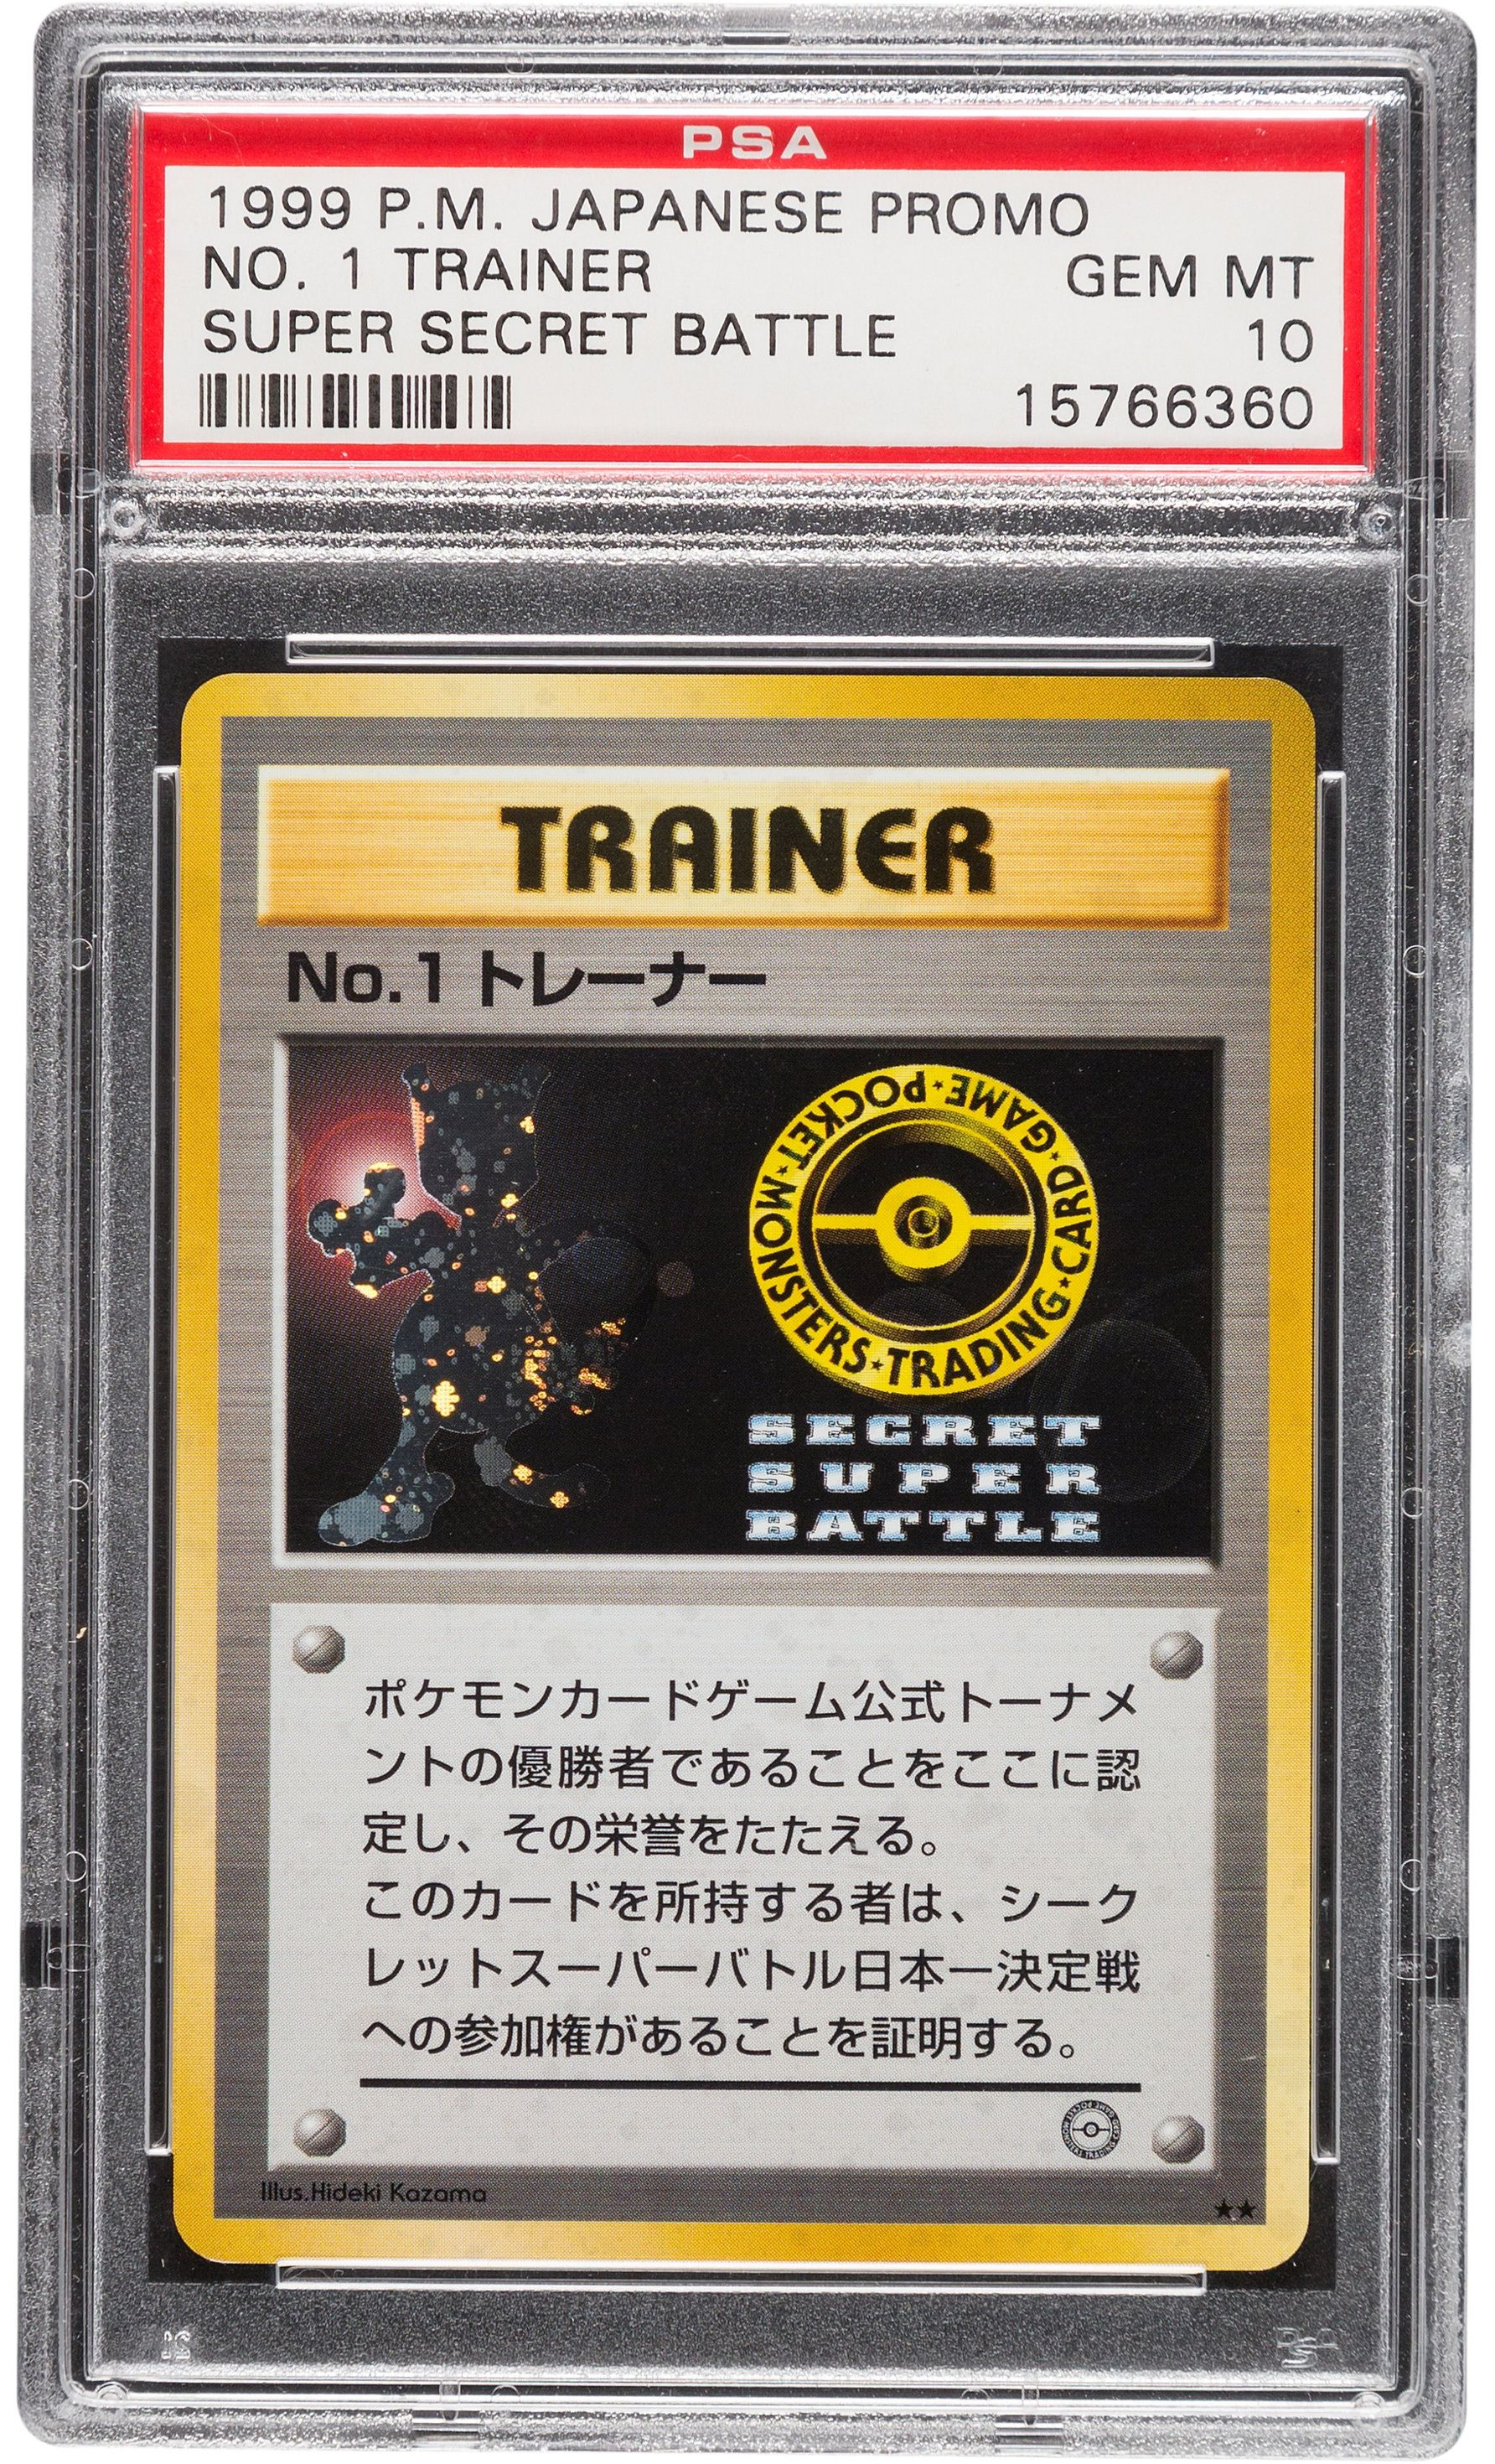 Pokémon Secret Super Battle Number 1 Trainer Card